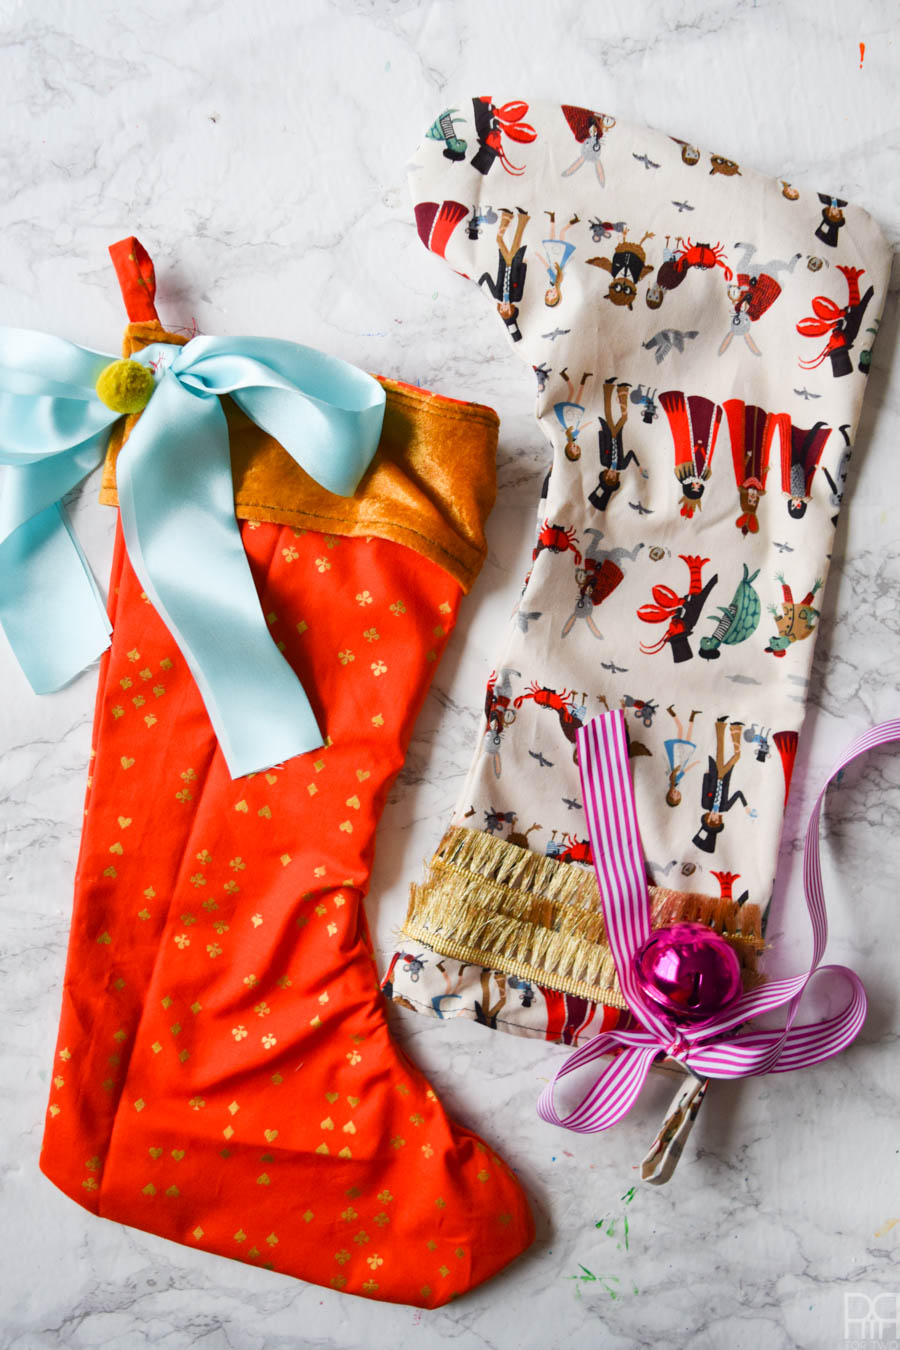 DIY Colourful Christmas Stockings are exactly what you need to kick it up a notch with your deco situation this year. Colourful fabric and vibrant trims create bold, show stopping accents.